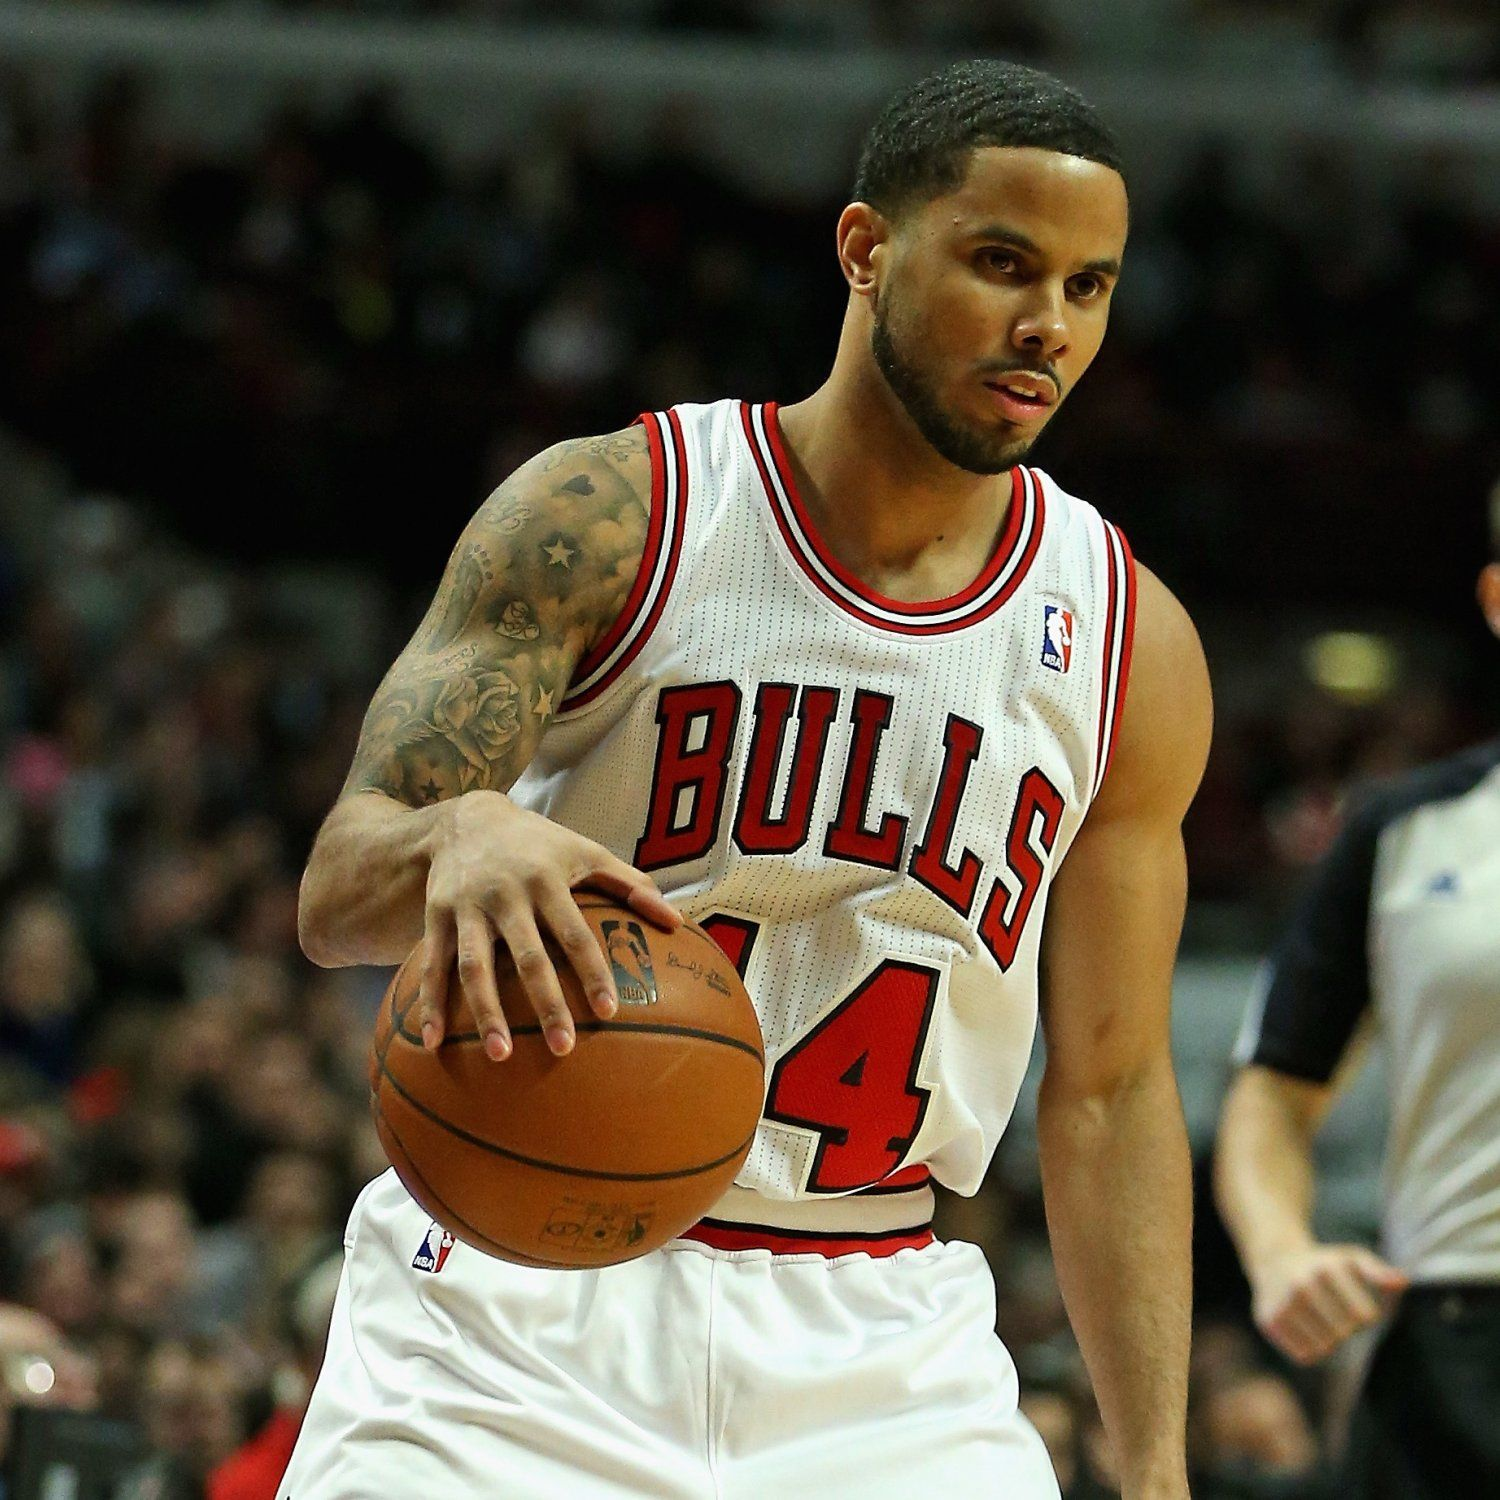 hi-res-459204231-augustin-of-the-chicago-bulls-moves-against-the-toronto_crop_exact